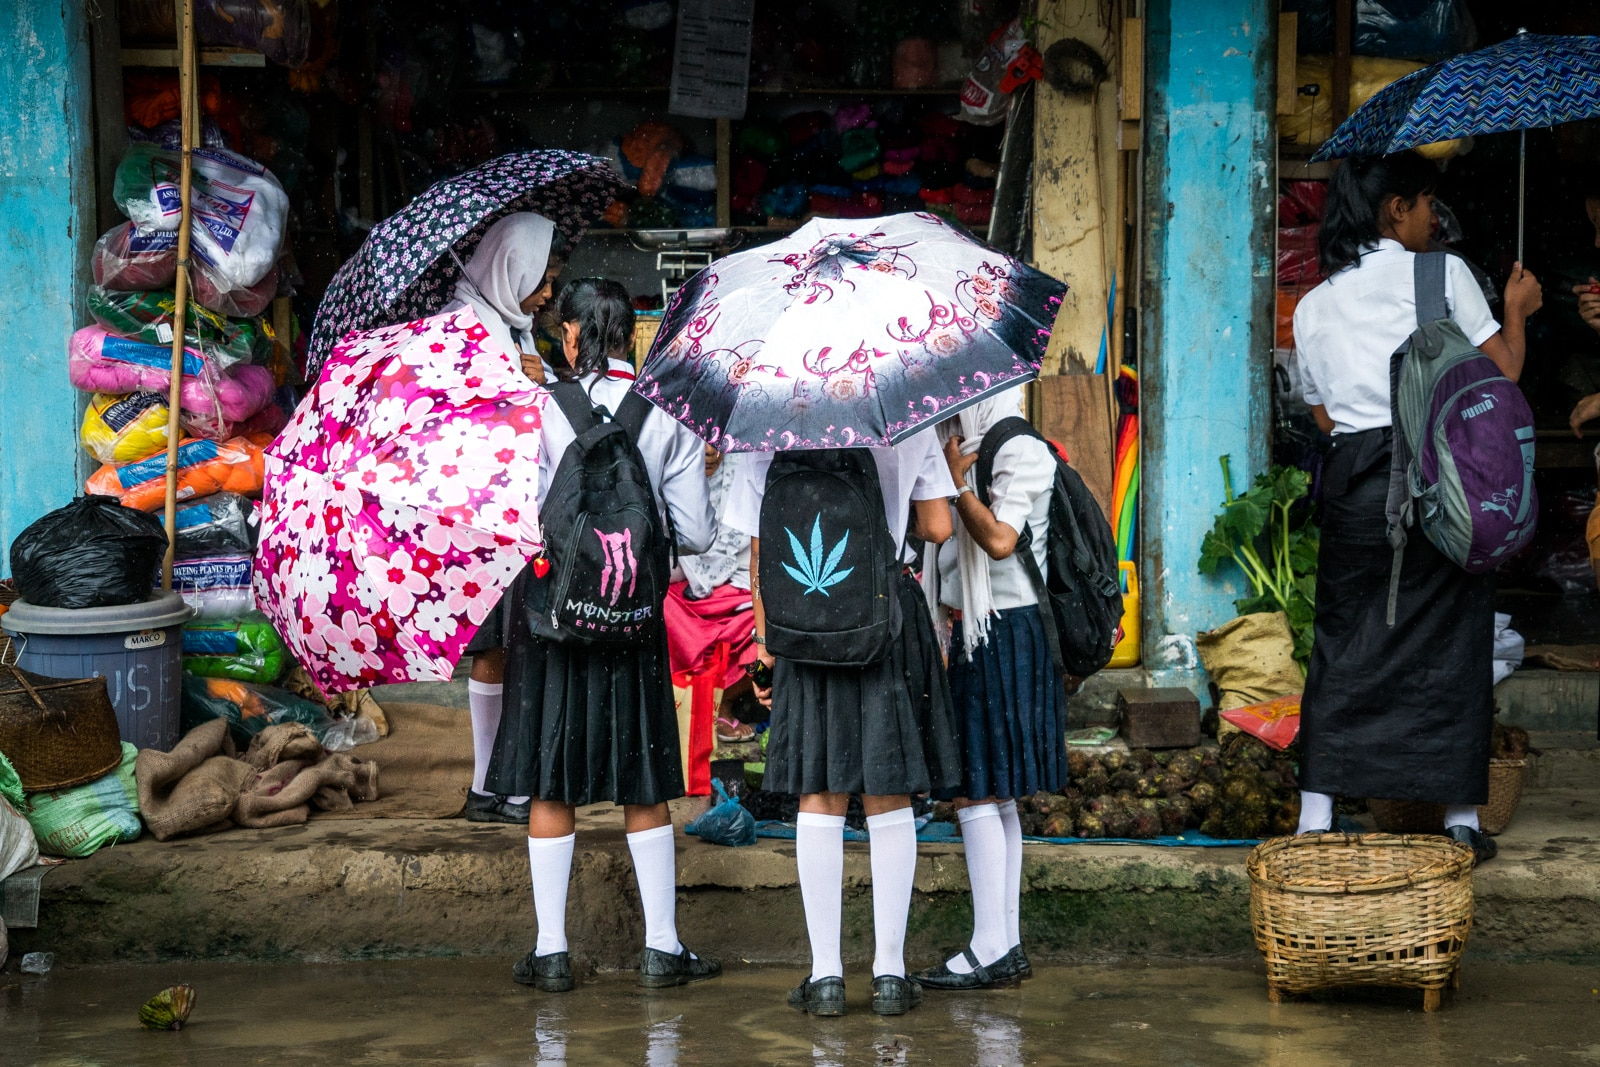 Monsoon travel packing list - Girls with umbrellas in Moirang, India - Lost With Purpose